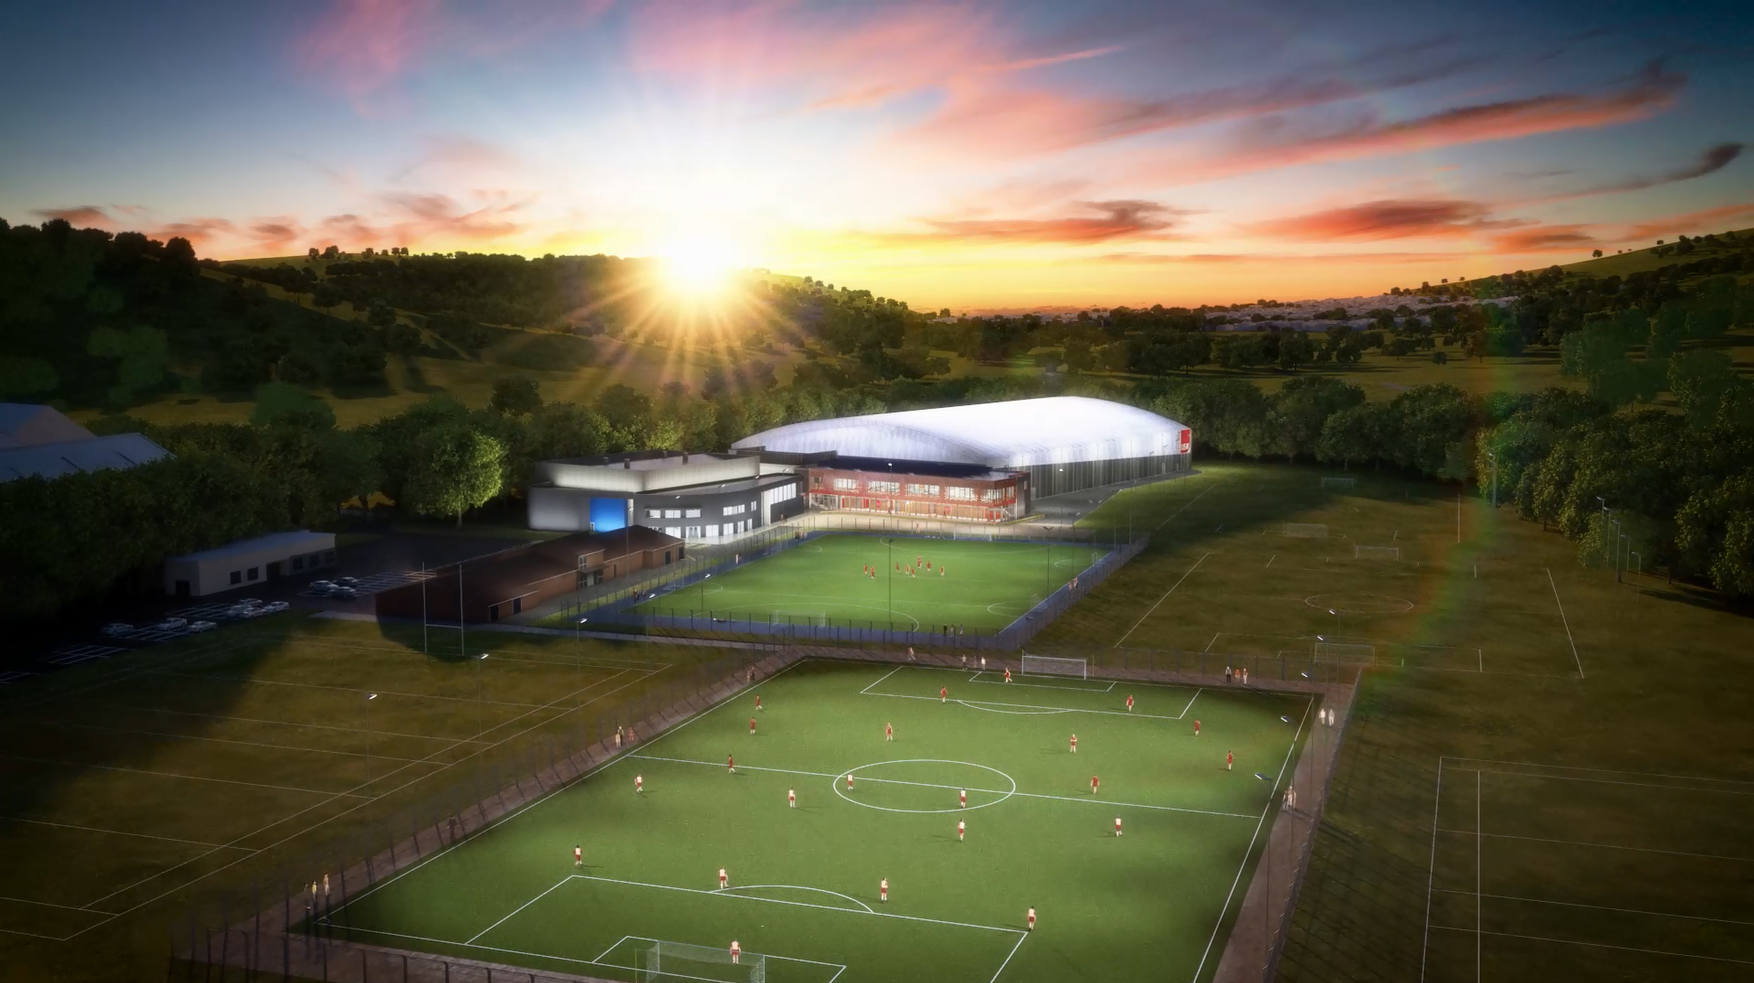 Wales' first indoor 3G football pitch being built at USW